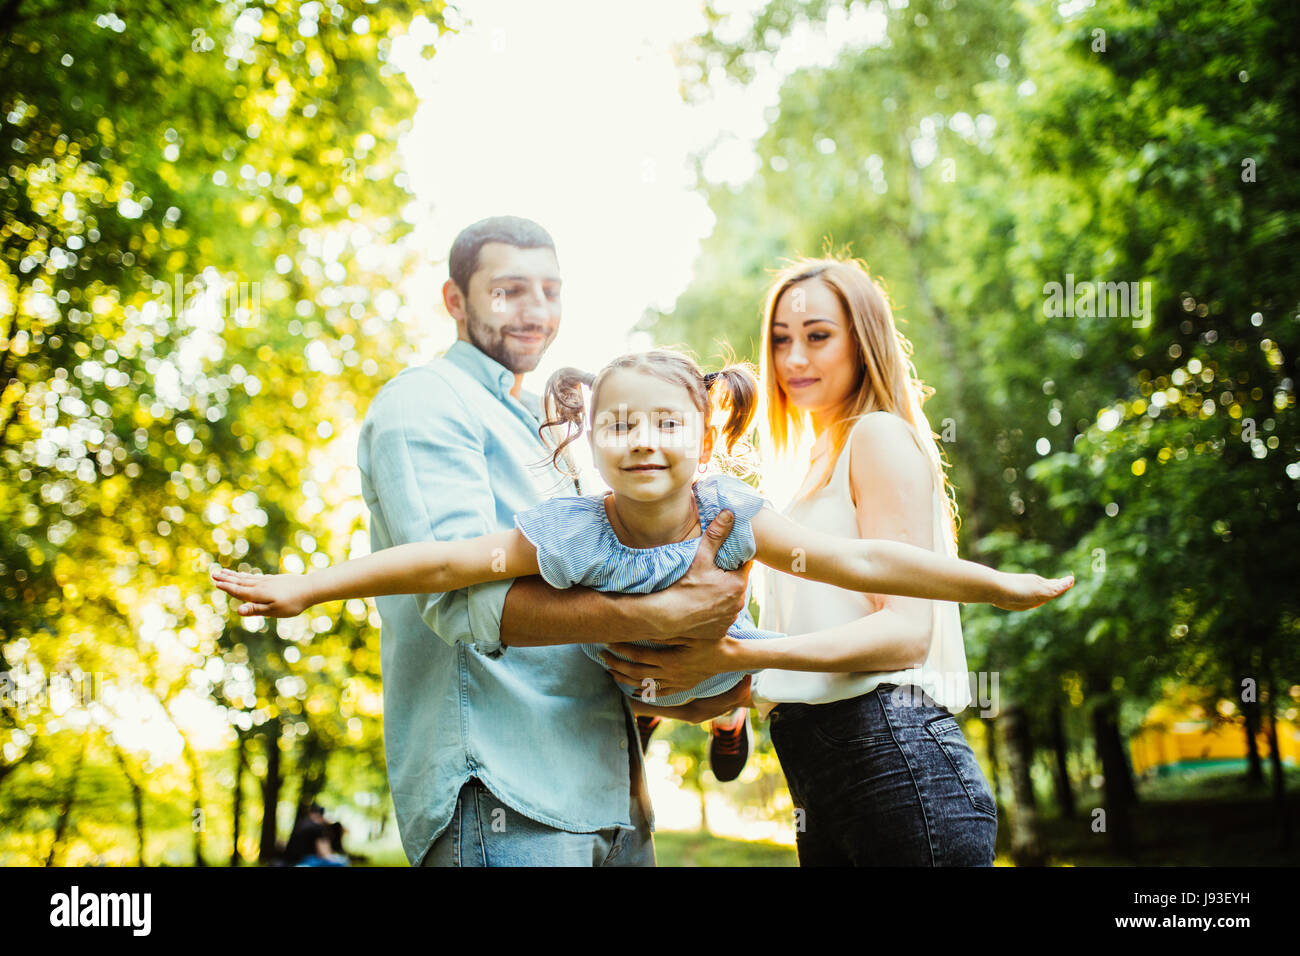 Happy family with one child having fun together in summer city park - Stock Image